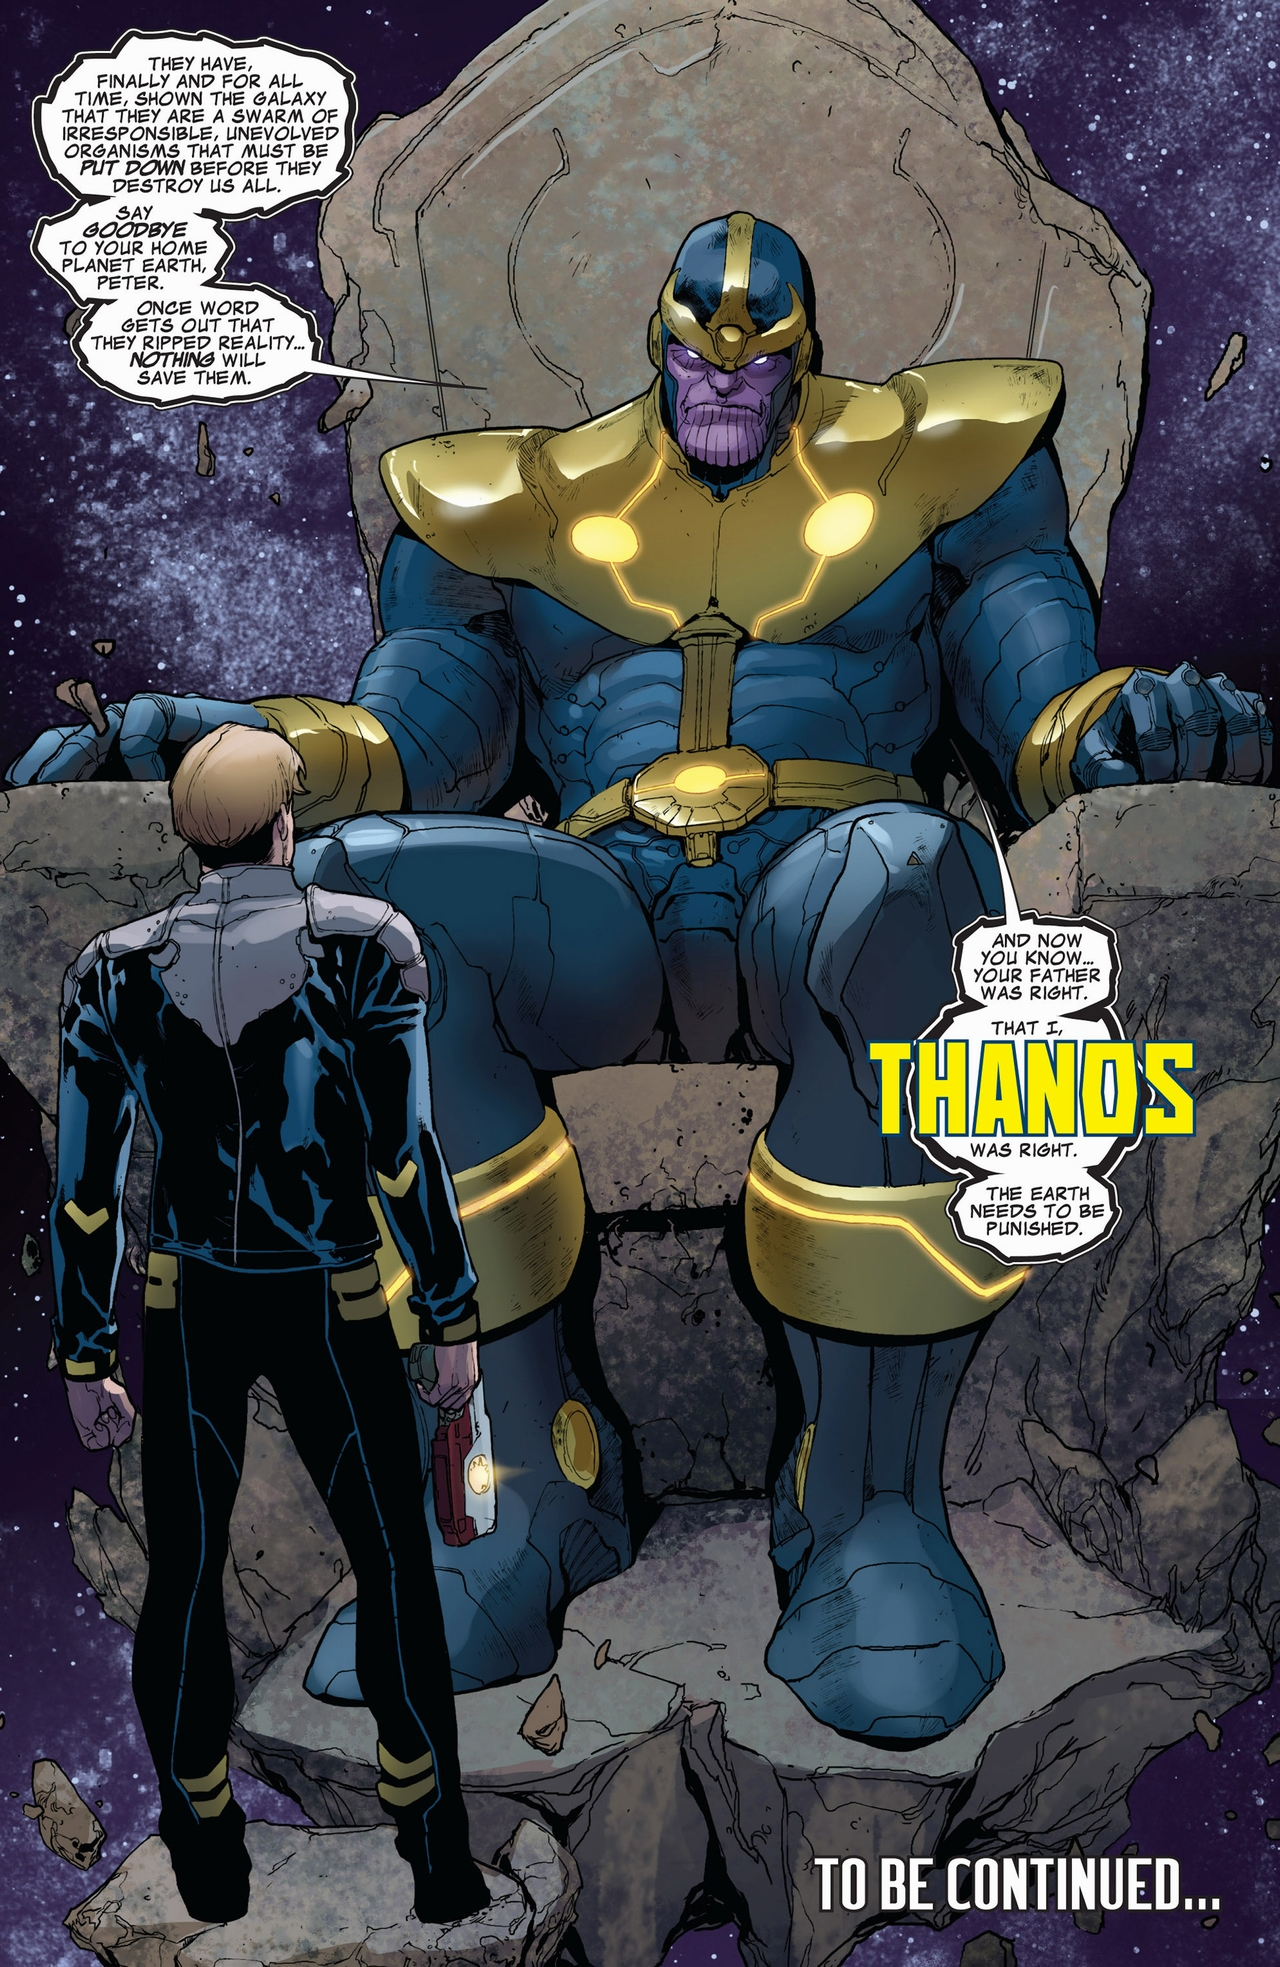 Star lord vs thanos dreager1 s blog